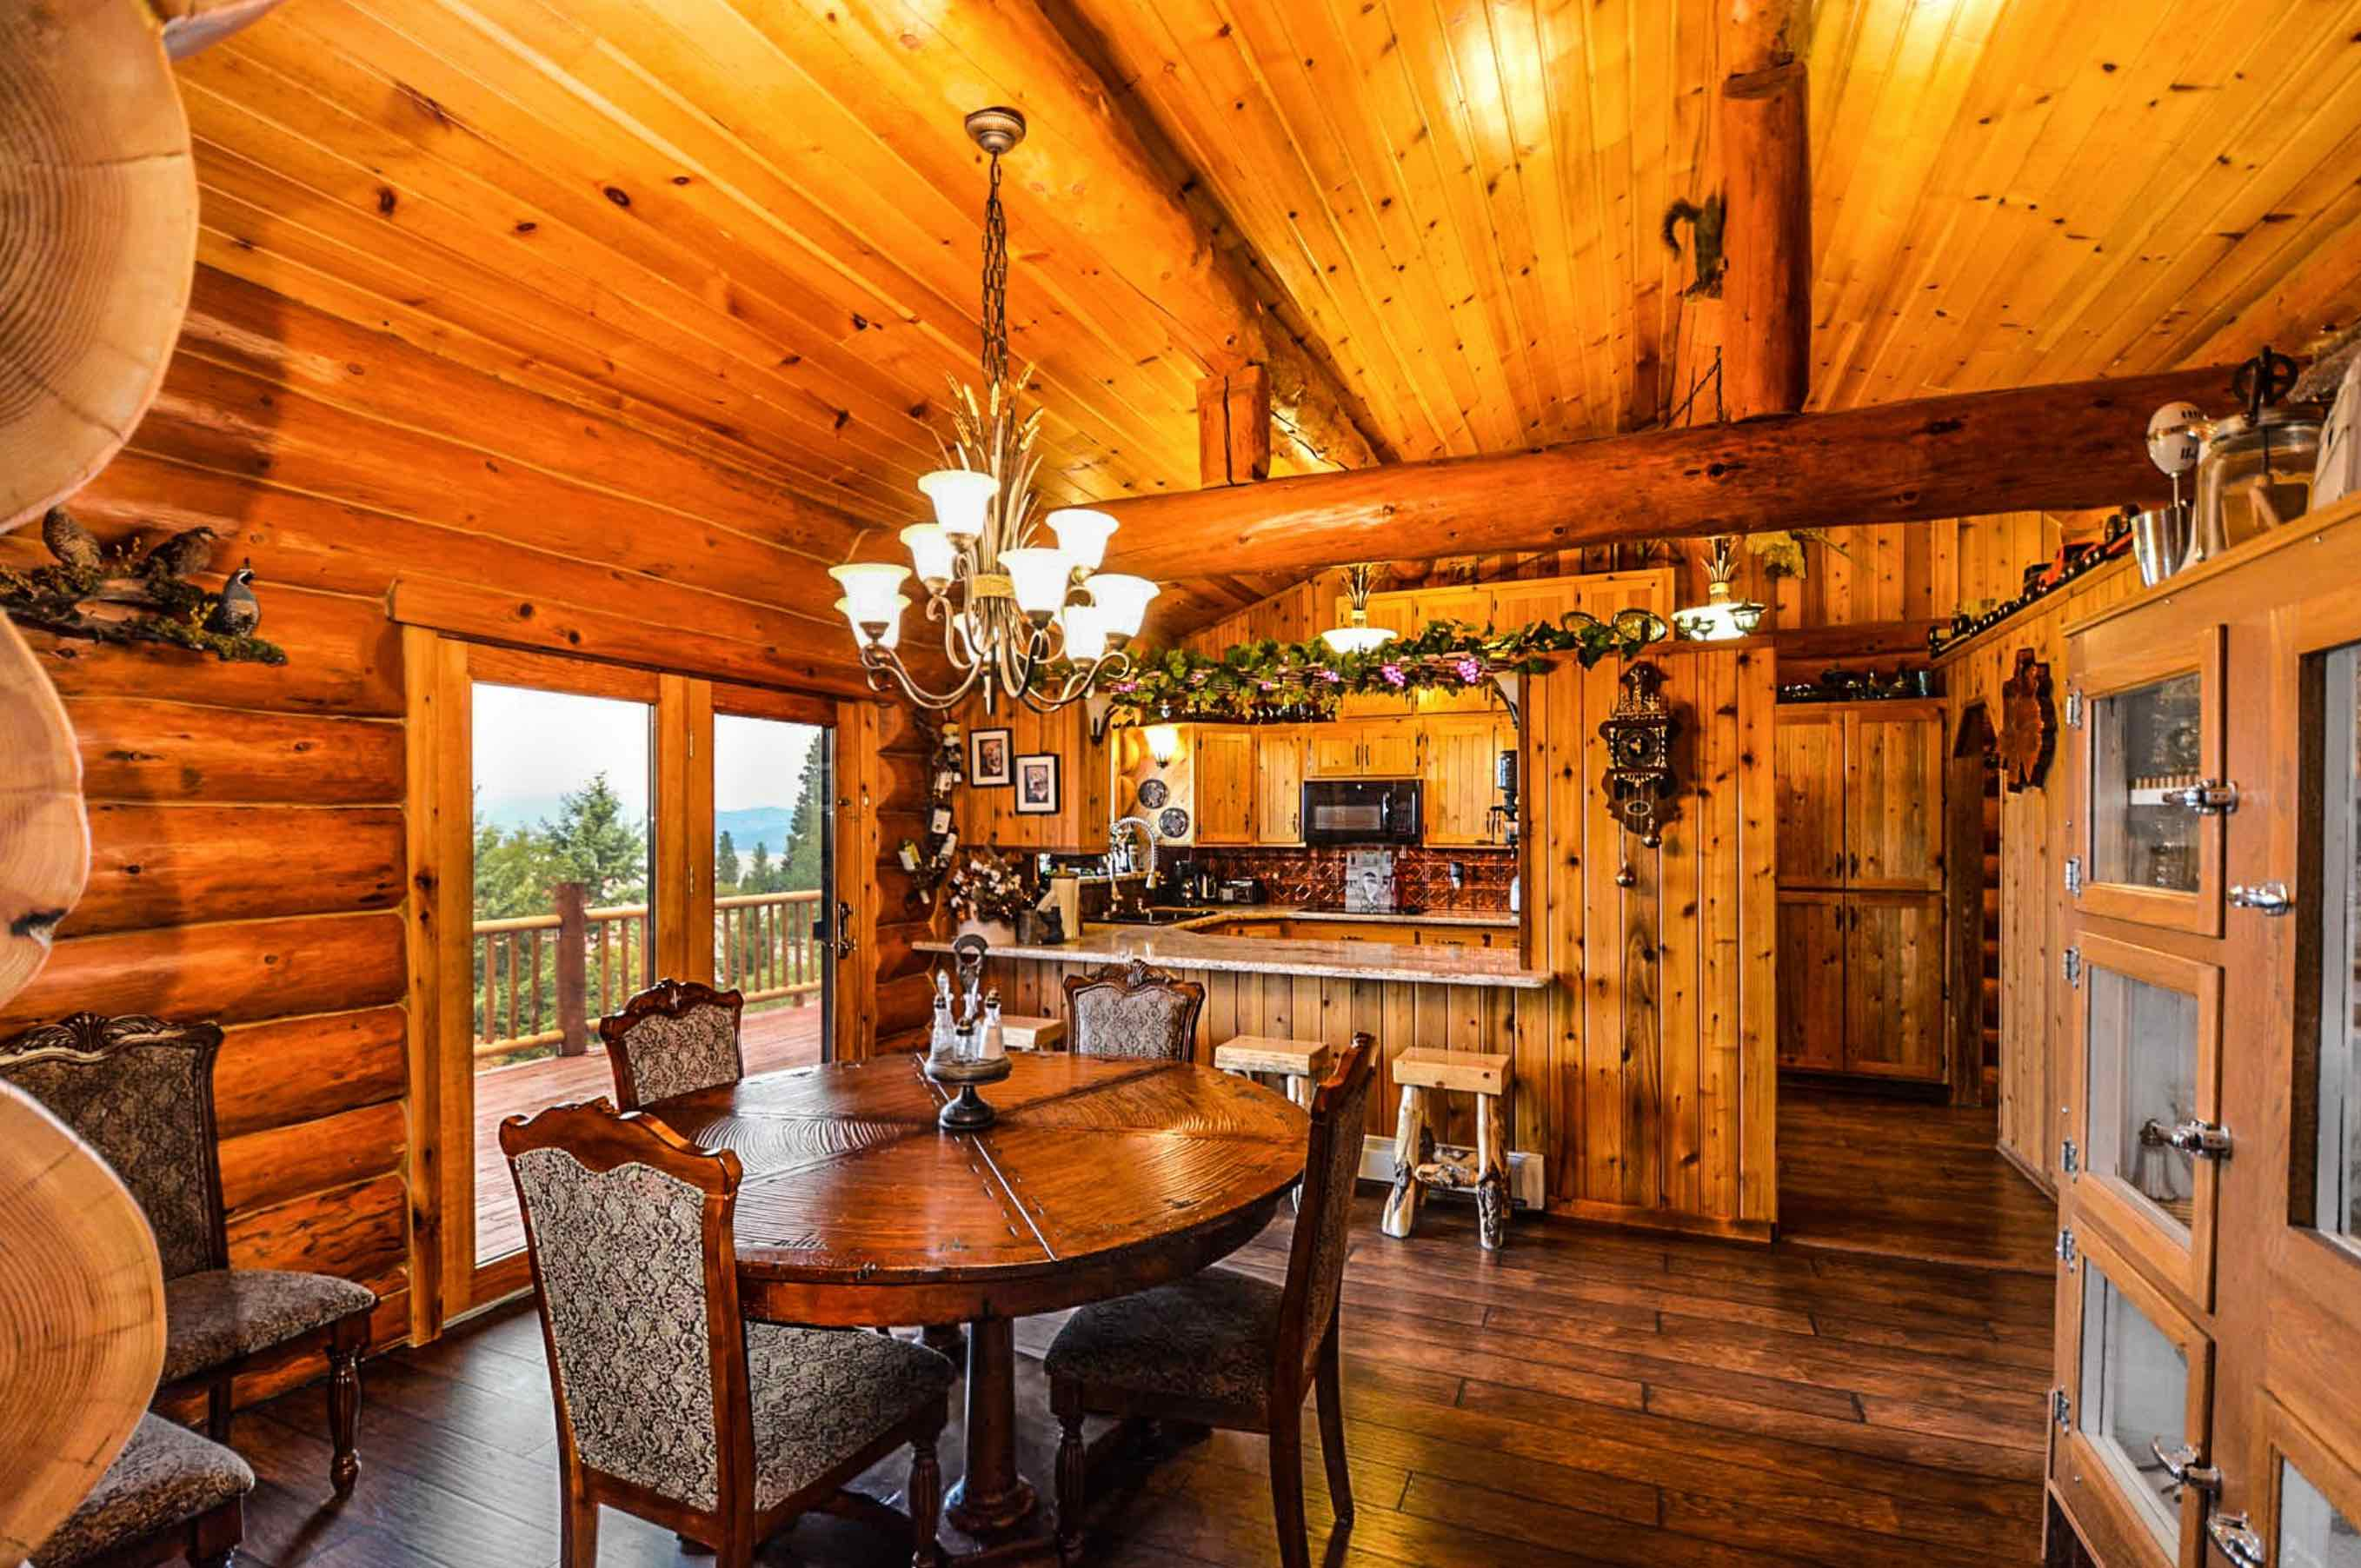 Rustic Style Cozy Cabin Decor Ideas